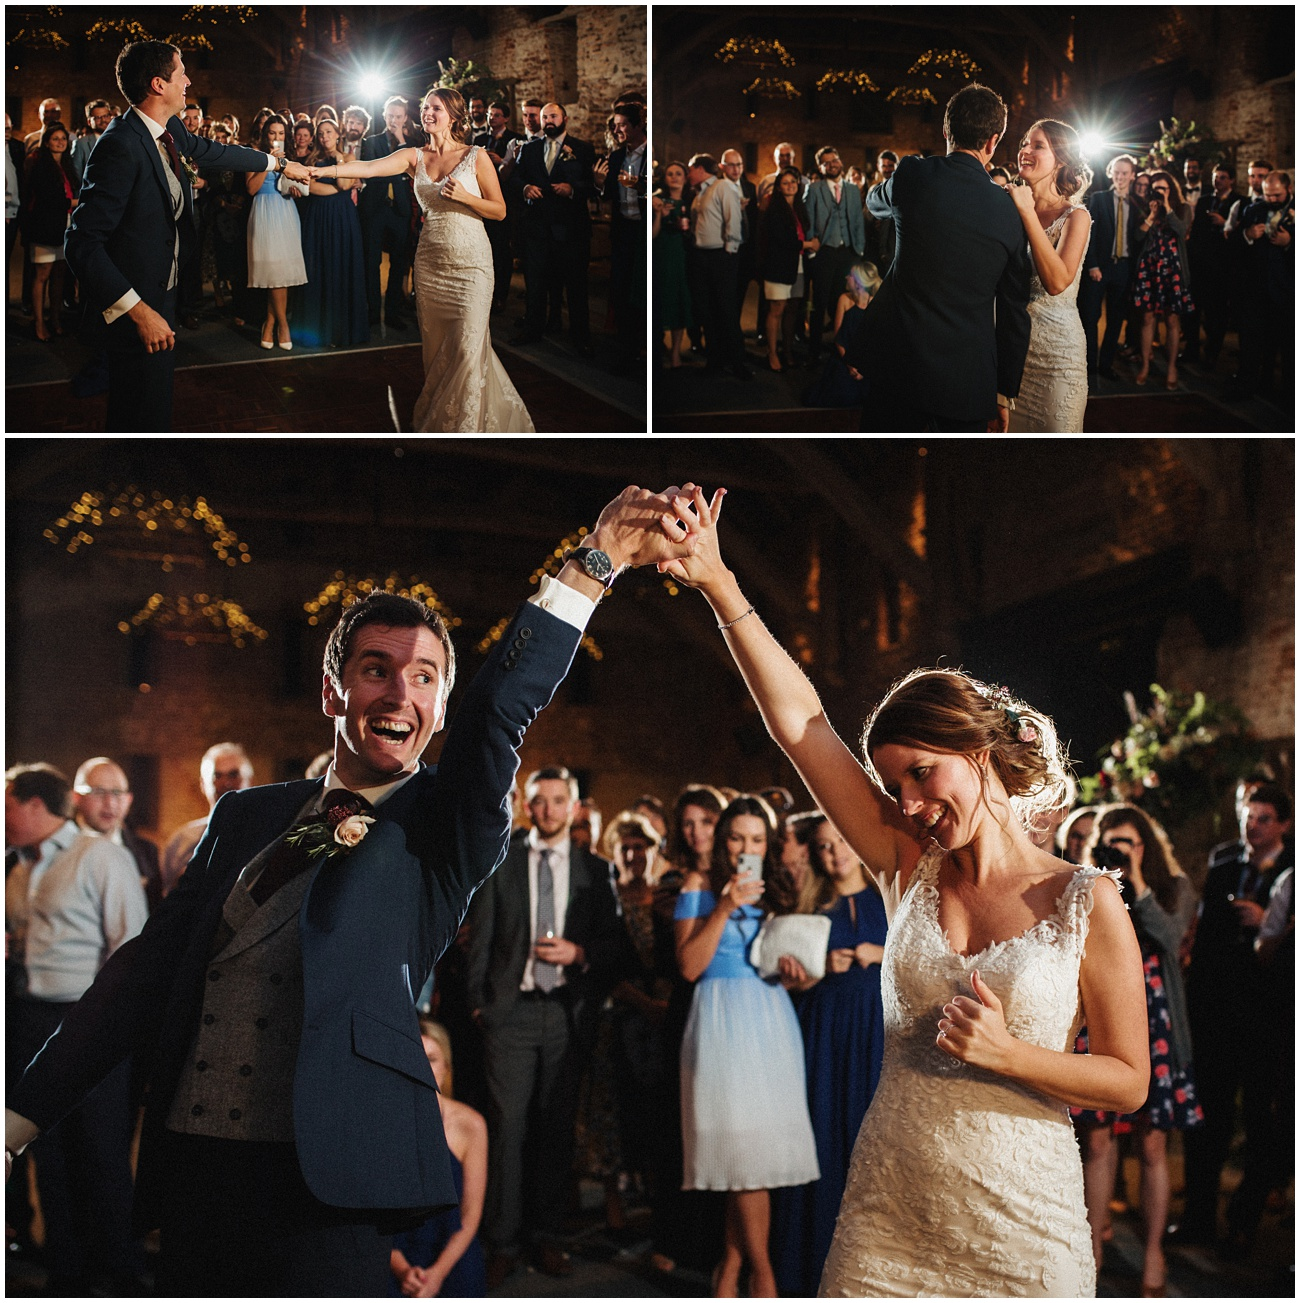 The first dance images